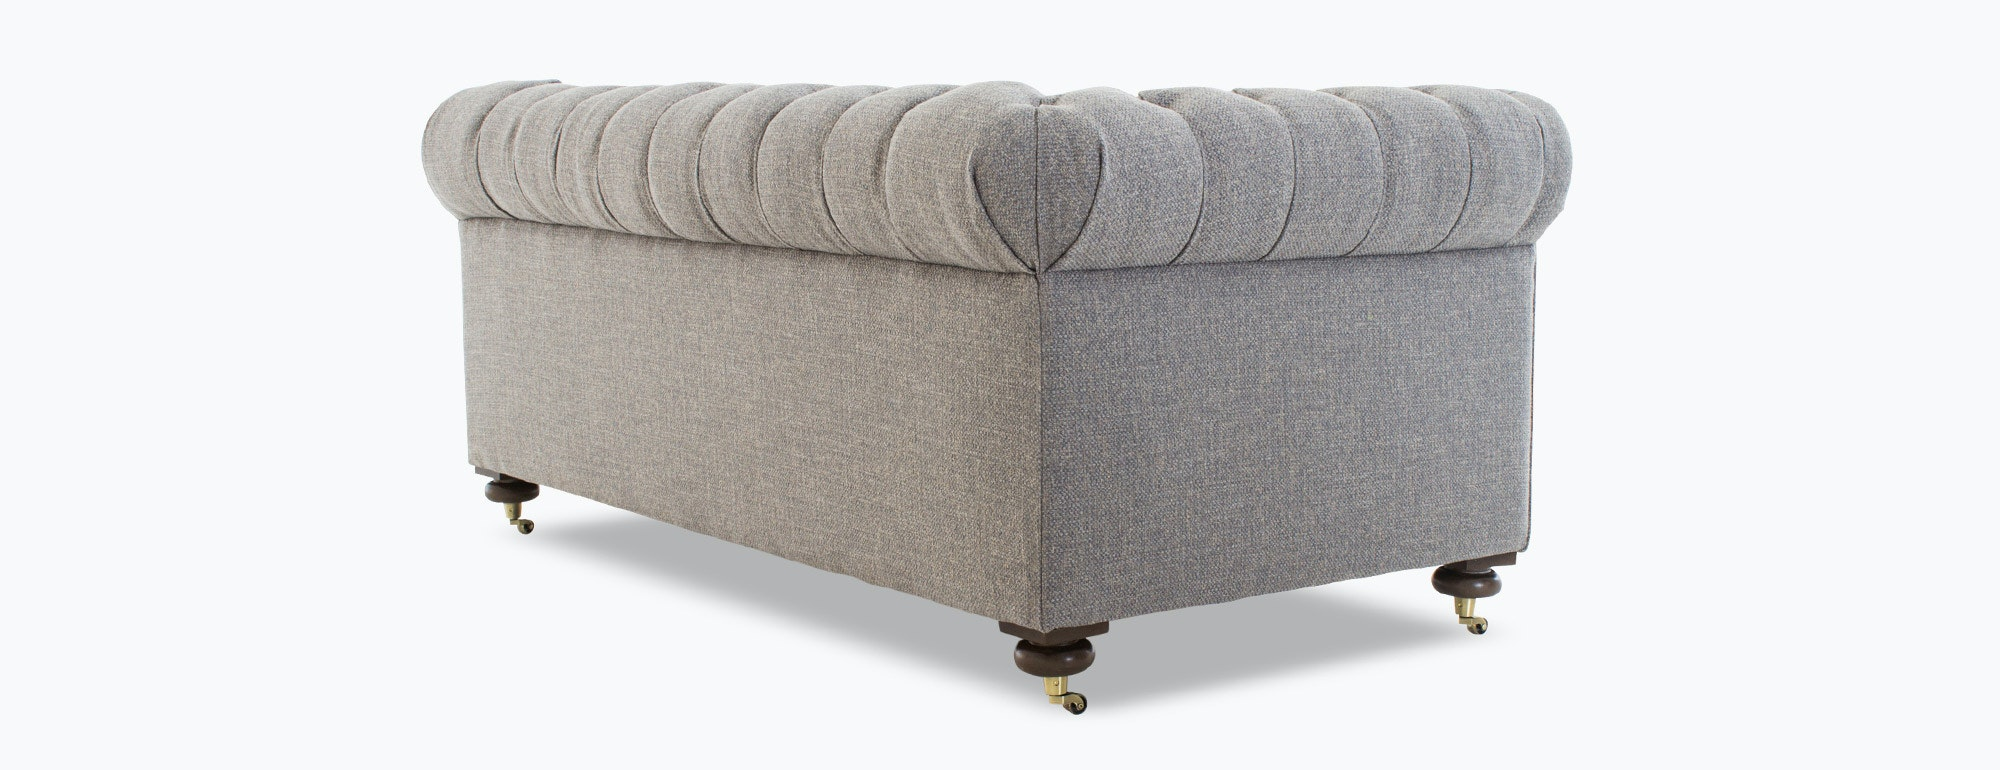 shown in Vibe Smokey Fabric